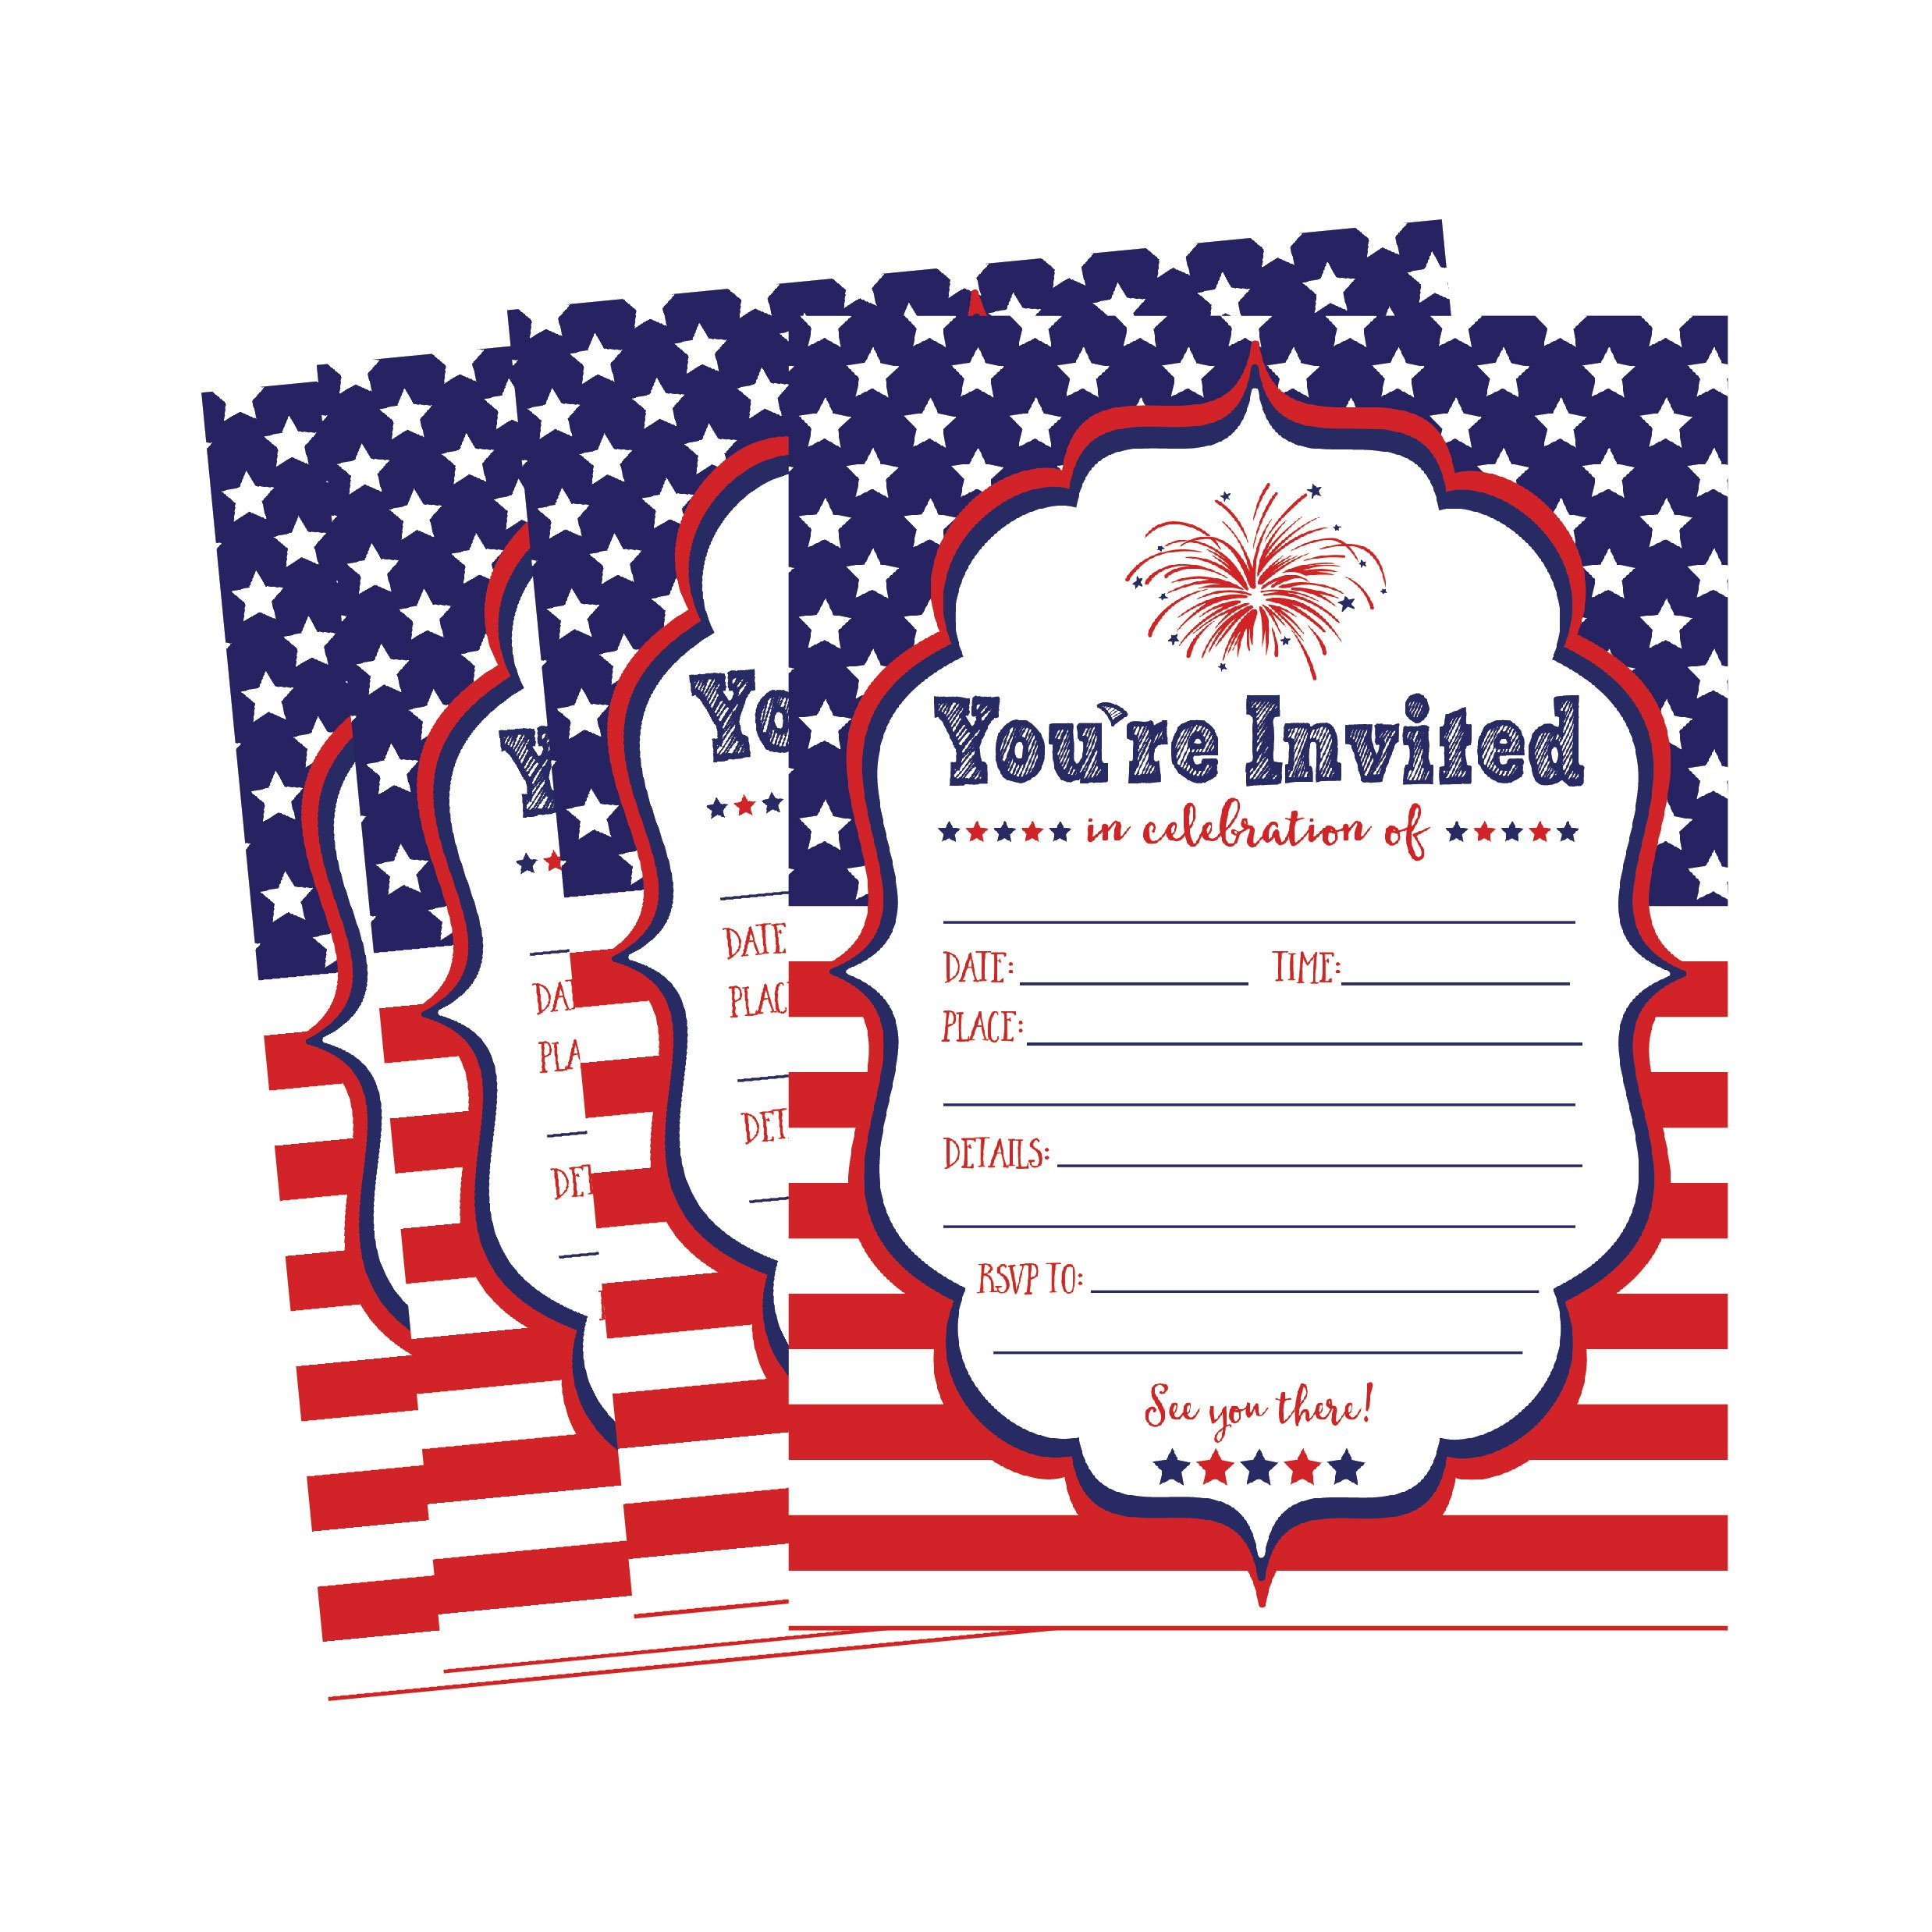 50 Patriotic Summer BBQ Party Invitations for Children, Kids, Teens Adults Fourth Barbecue Cards, Red White and Blue 4th of July Military Graduation Pool Family Reunion Invite, Picnic Cookout Invites by Hadley Designs